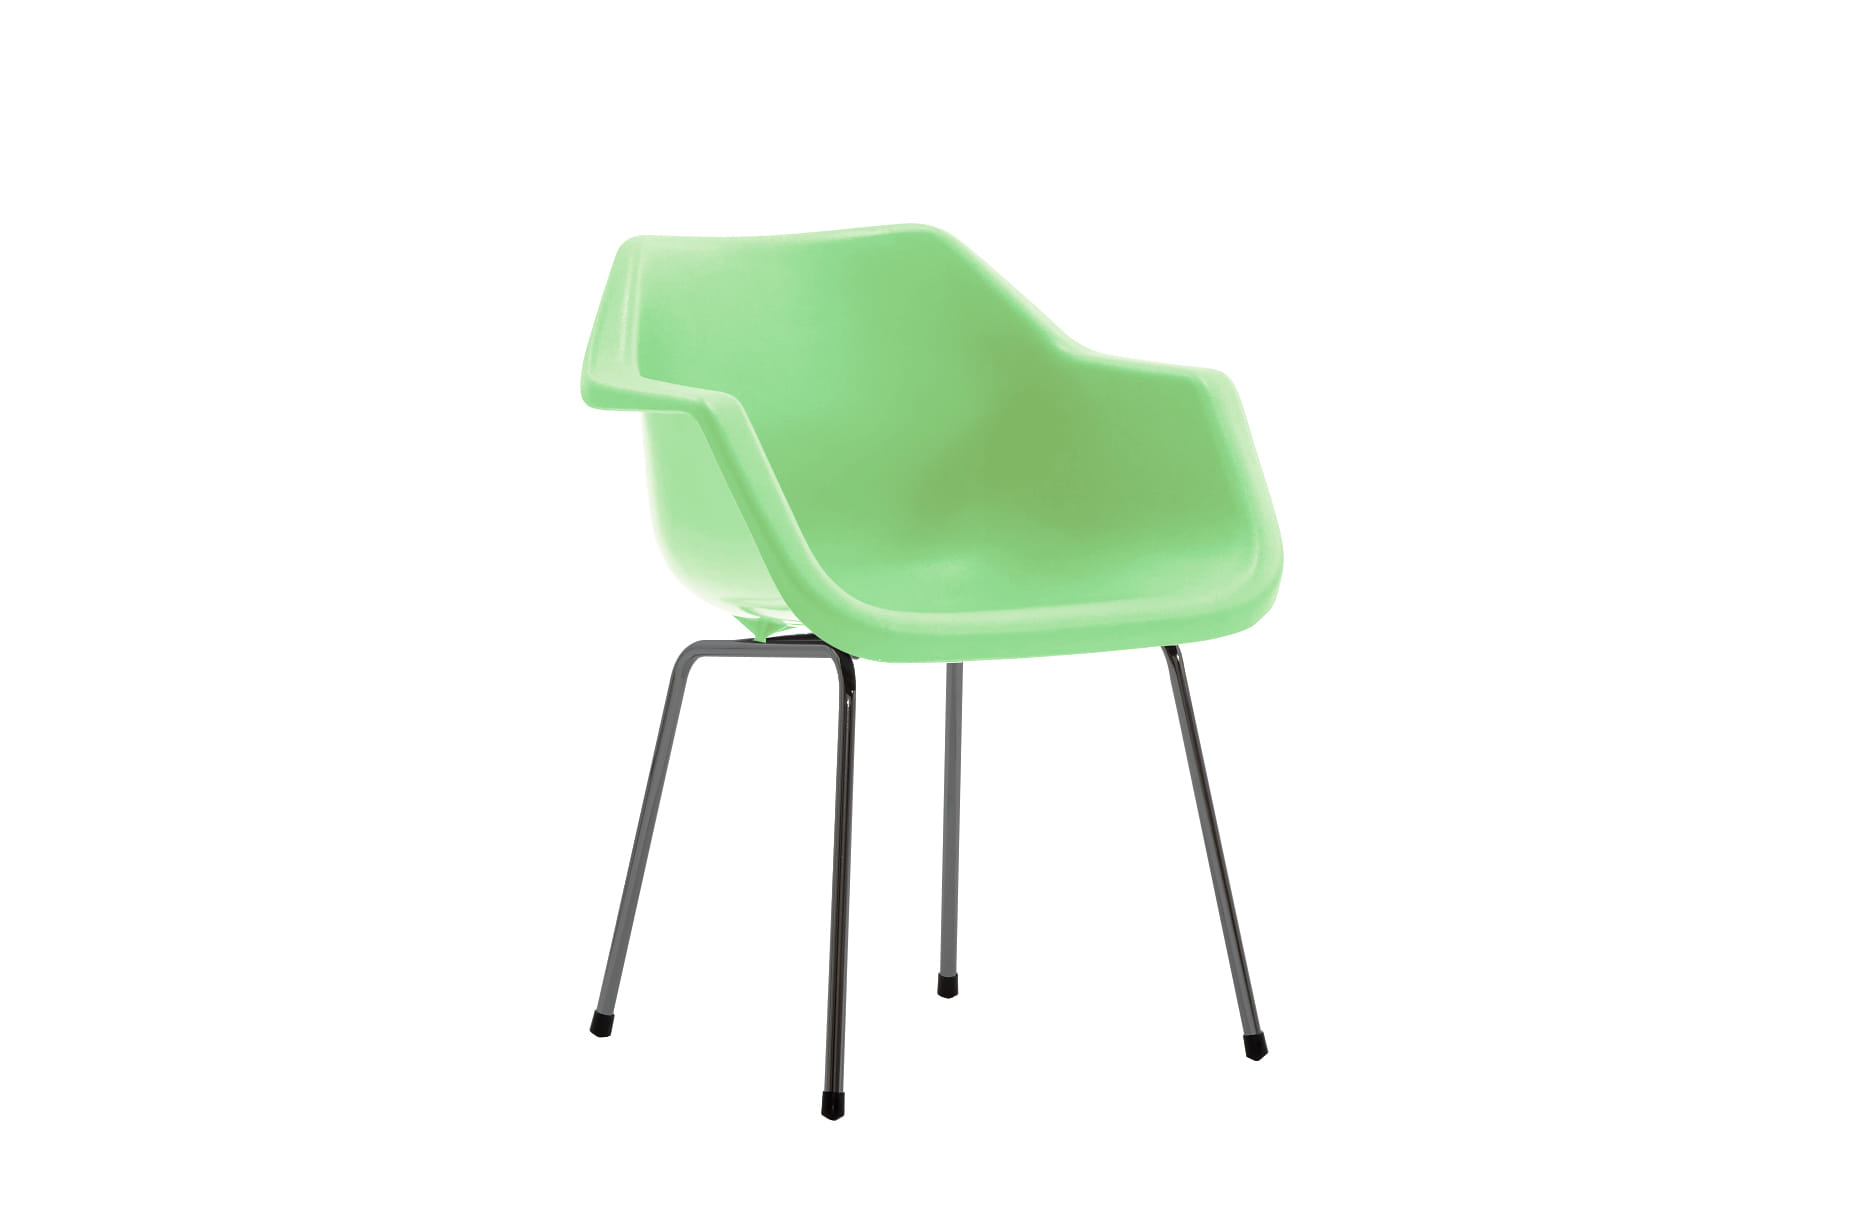 (주)도이치[BRITISHER] armchair by Robinday 1967 / black leg / Special Edition _English green for BRITISHER